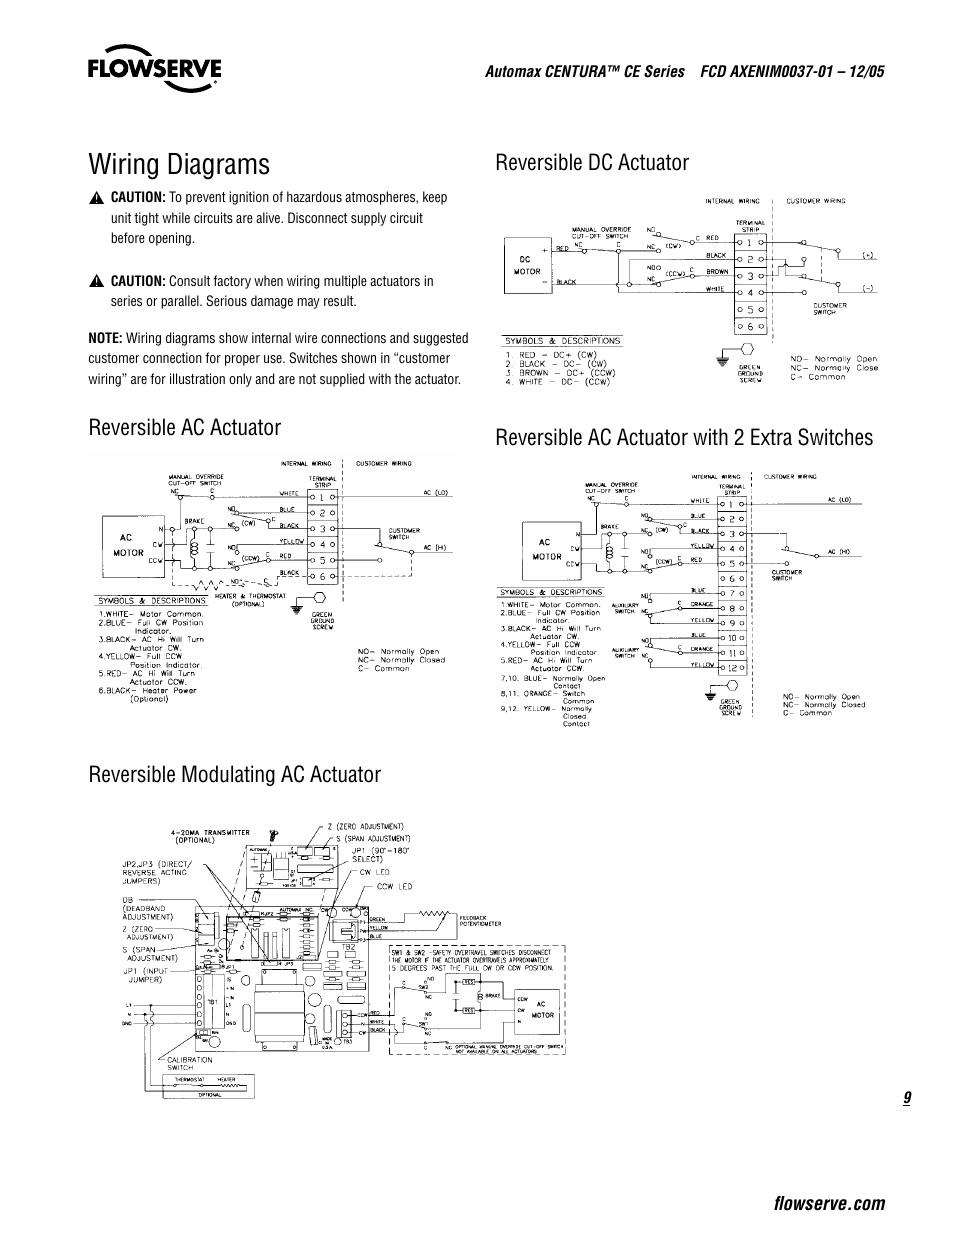 Flowserve Wiring Diagram Detailed Schematics Multi Schematic Diagrams Ce Series Automax Centura User Manual Snatch Block